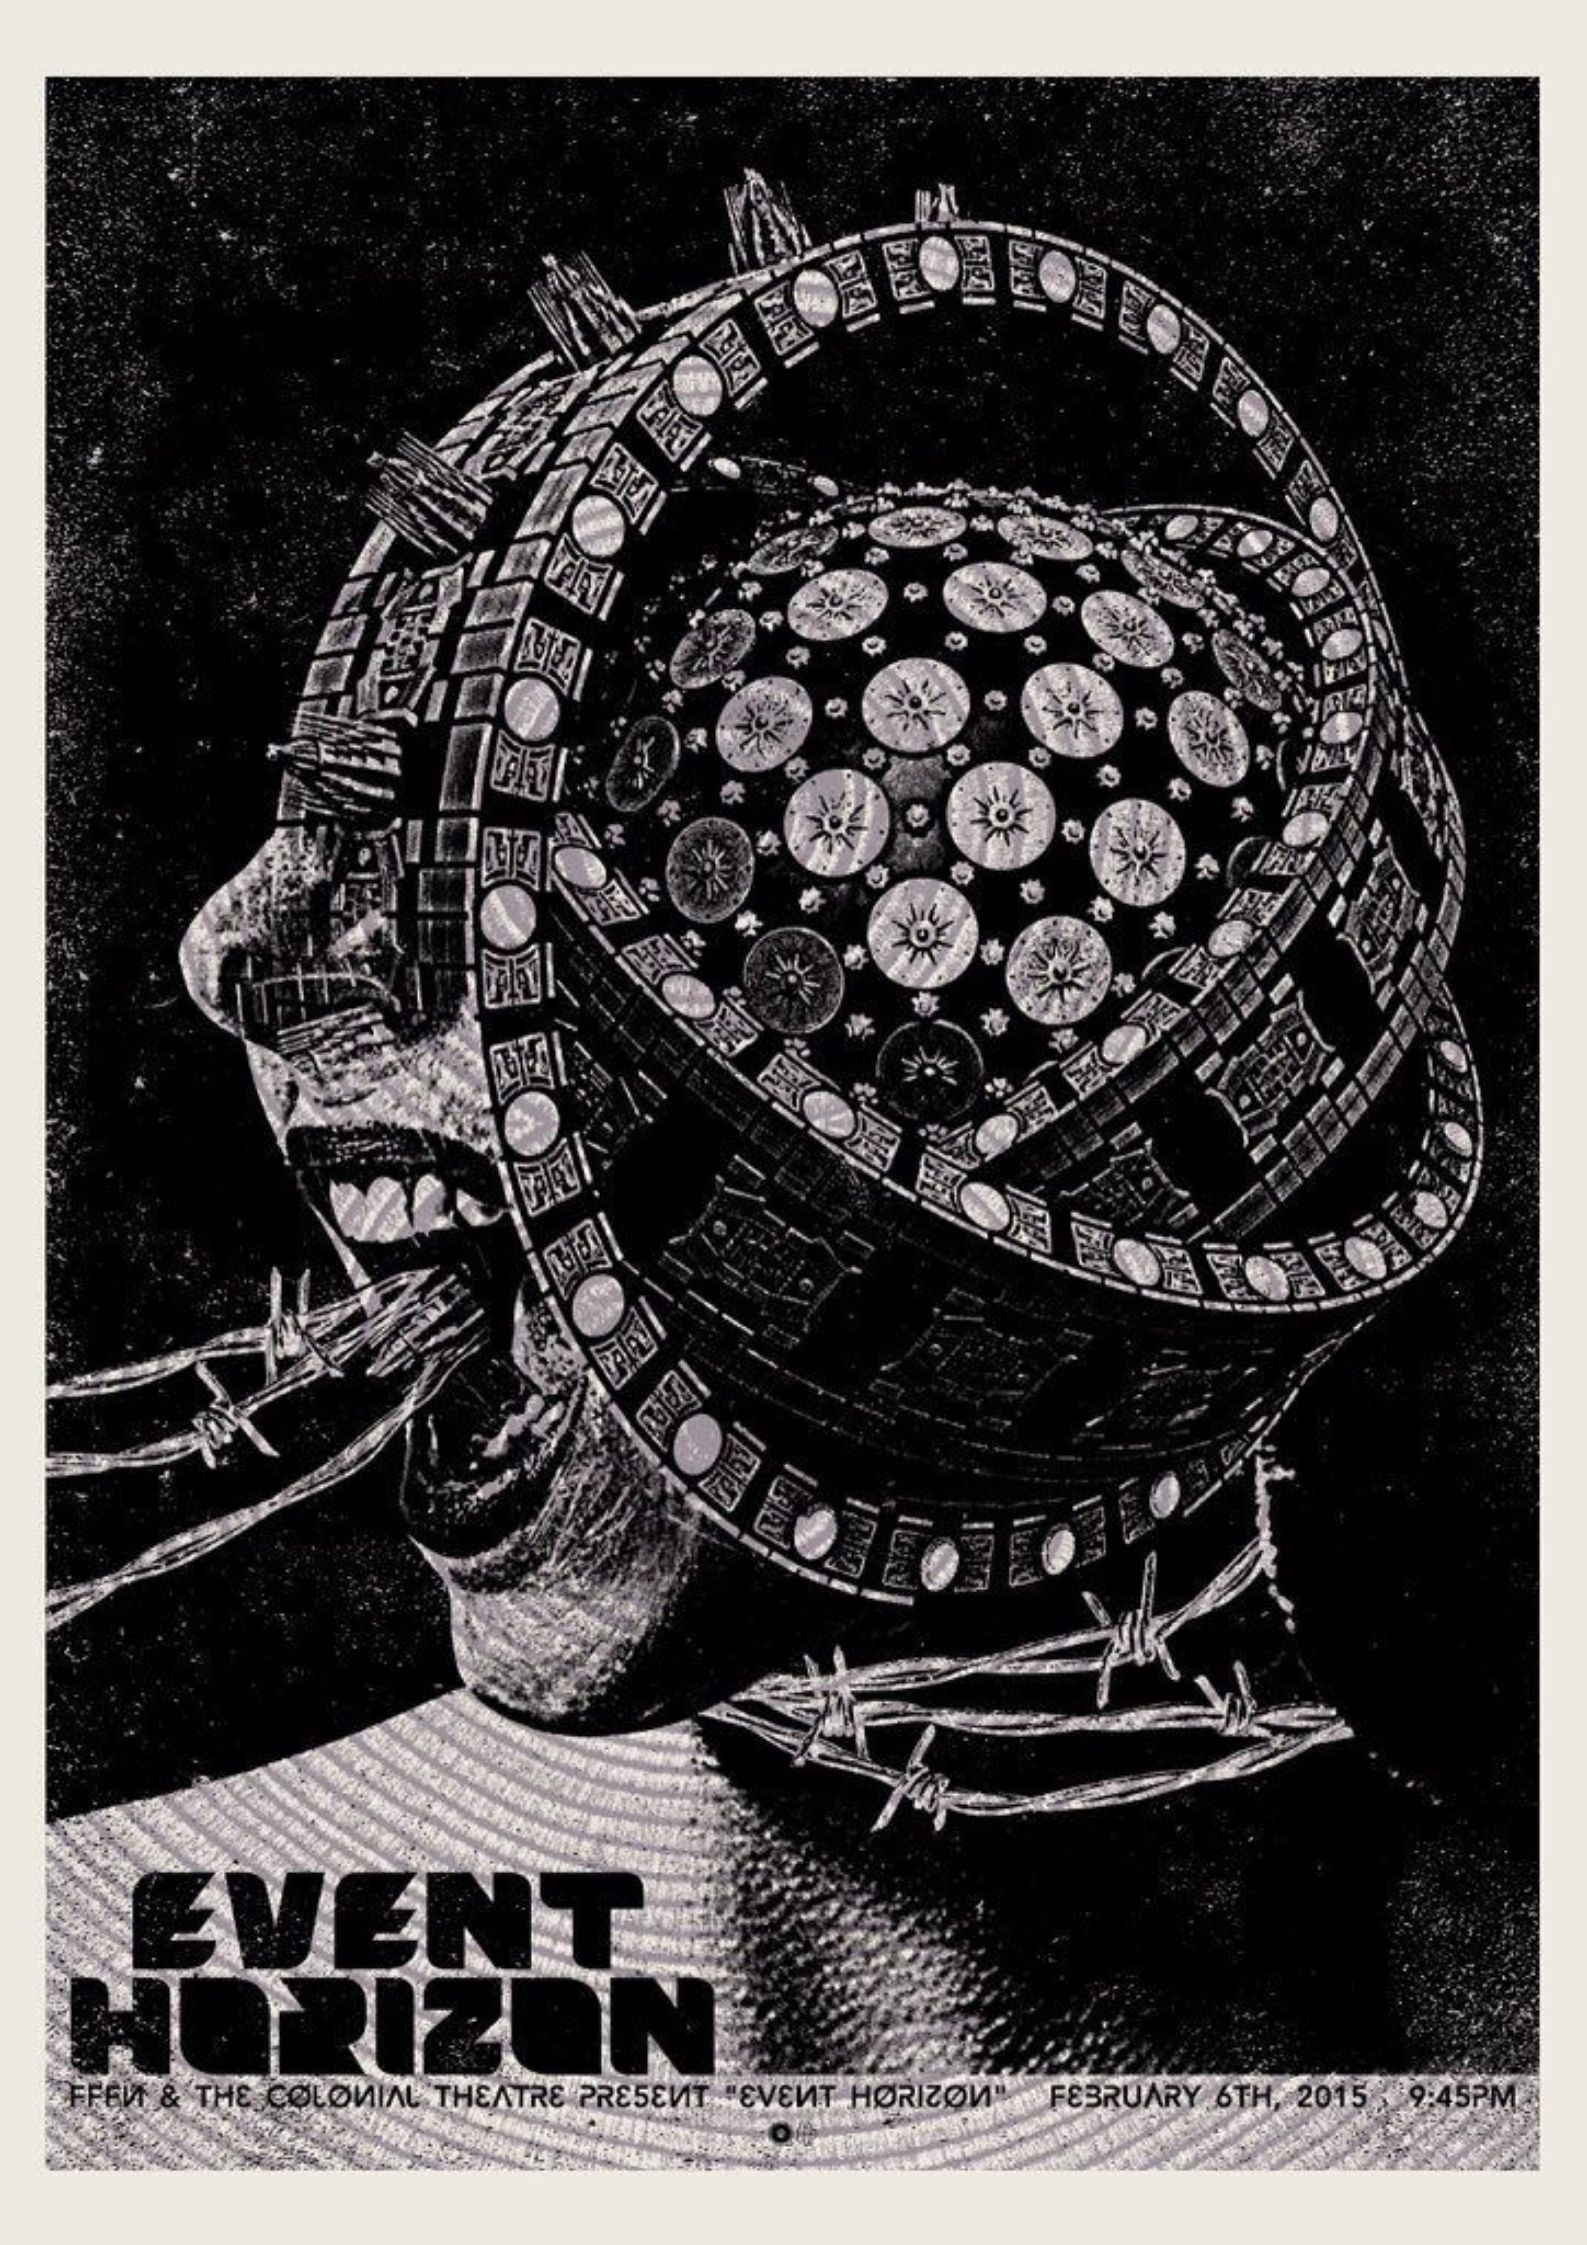 Chris Garofalo's poster of Event Horizon 1997